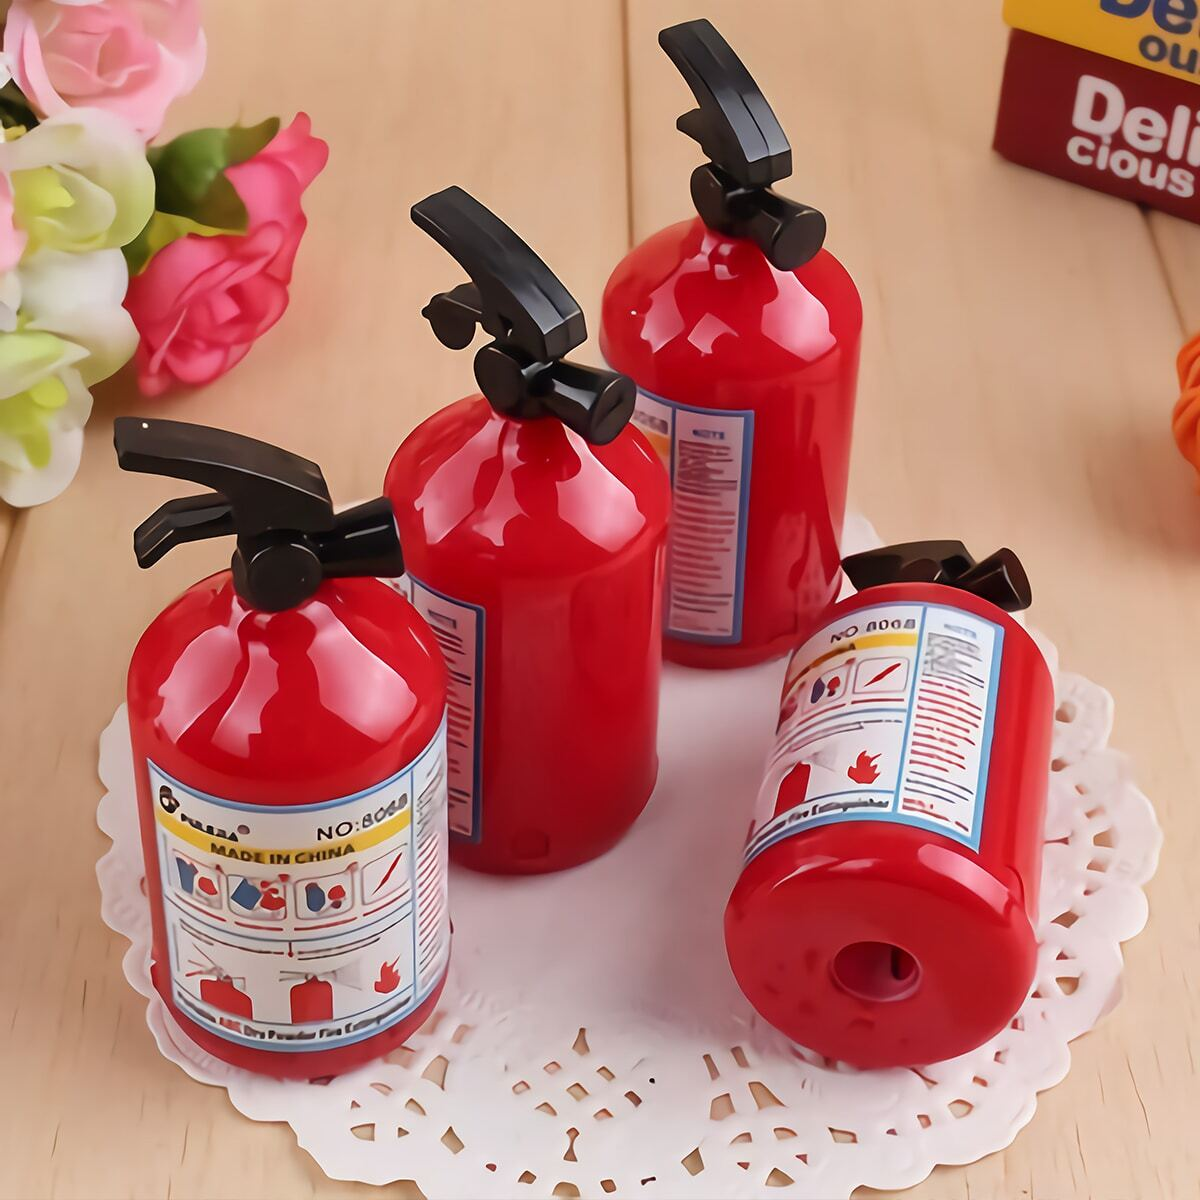 SHEIN coupon: Fire Extinguisher Shaped Sharpener 1pc